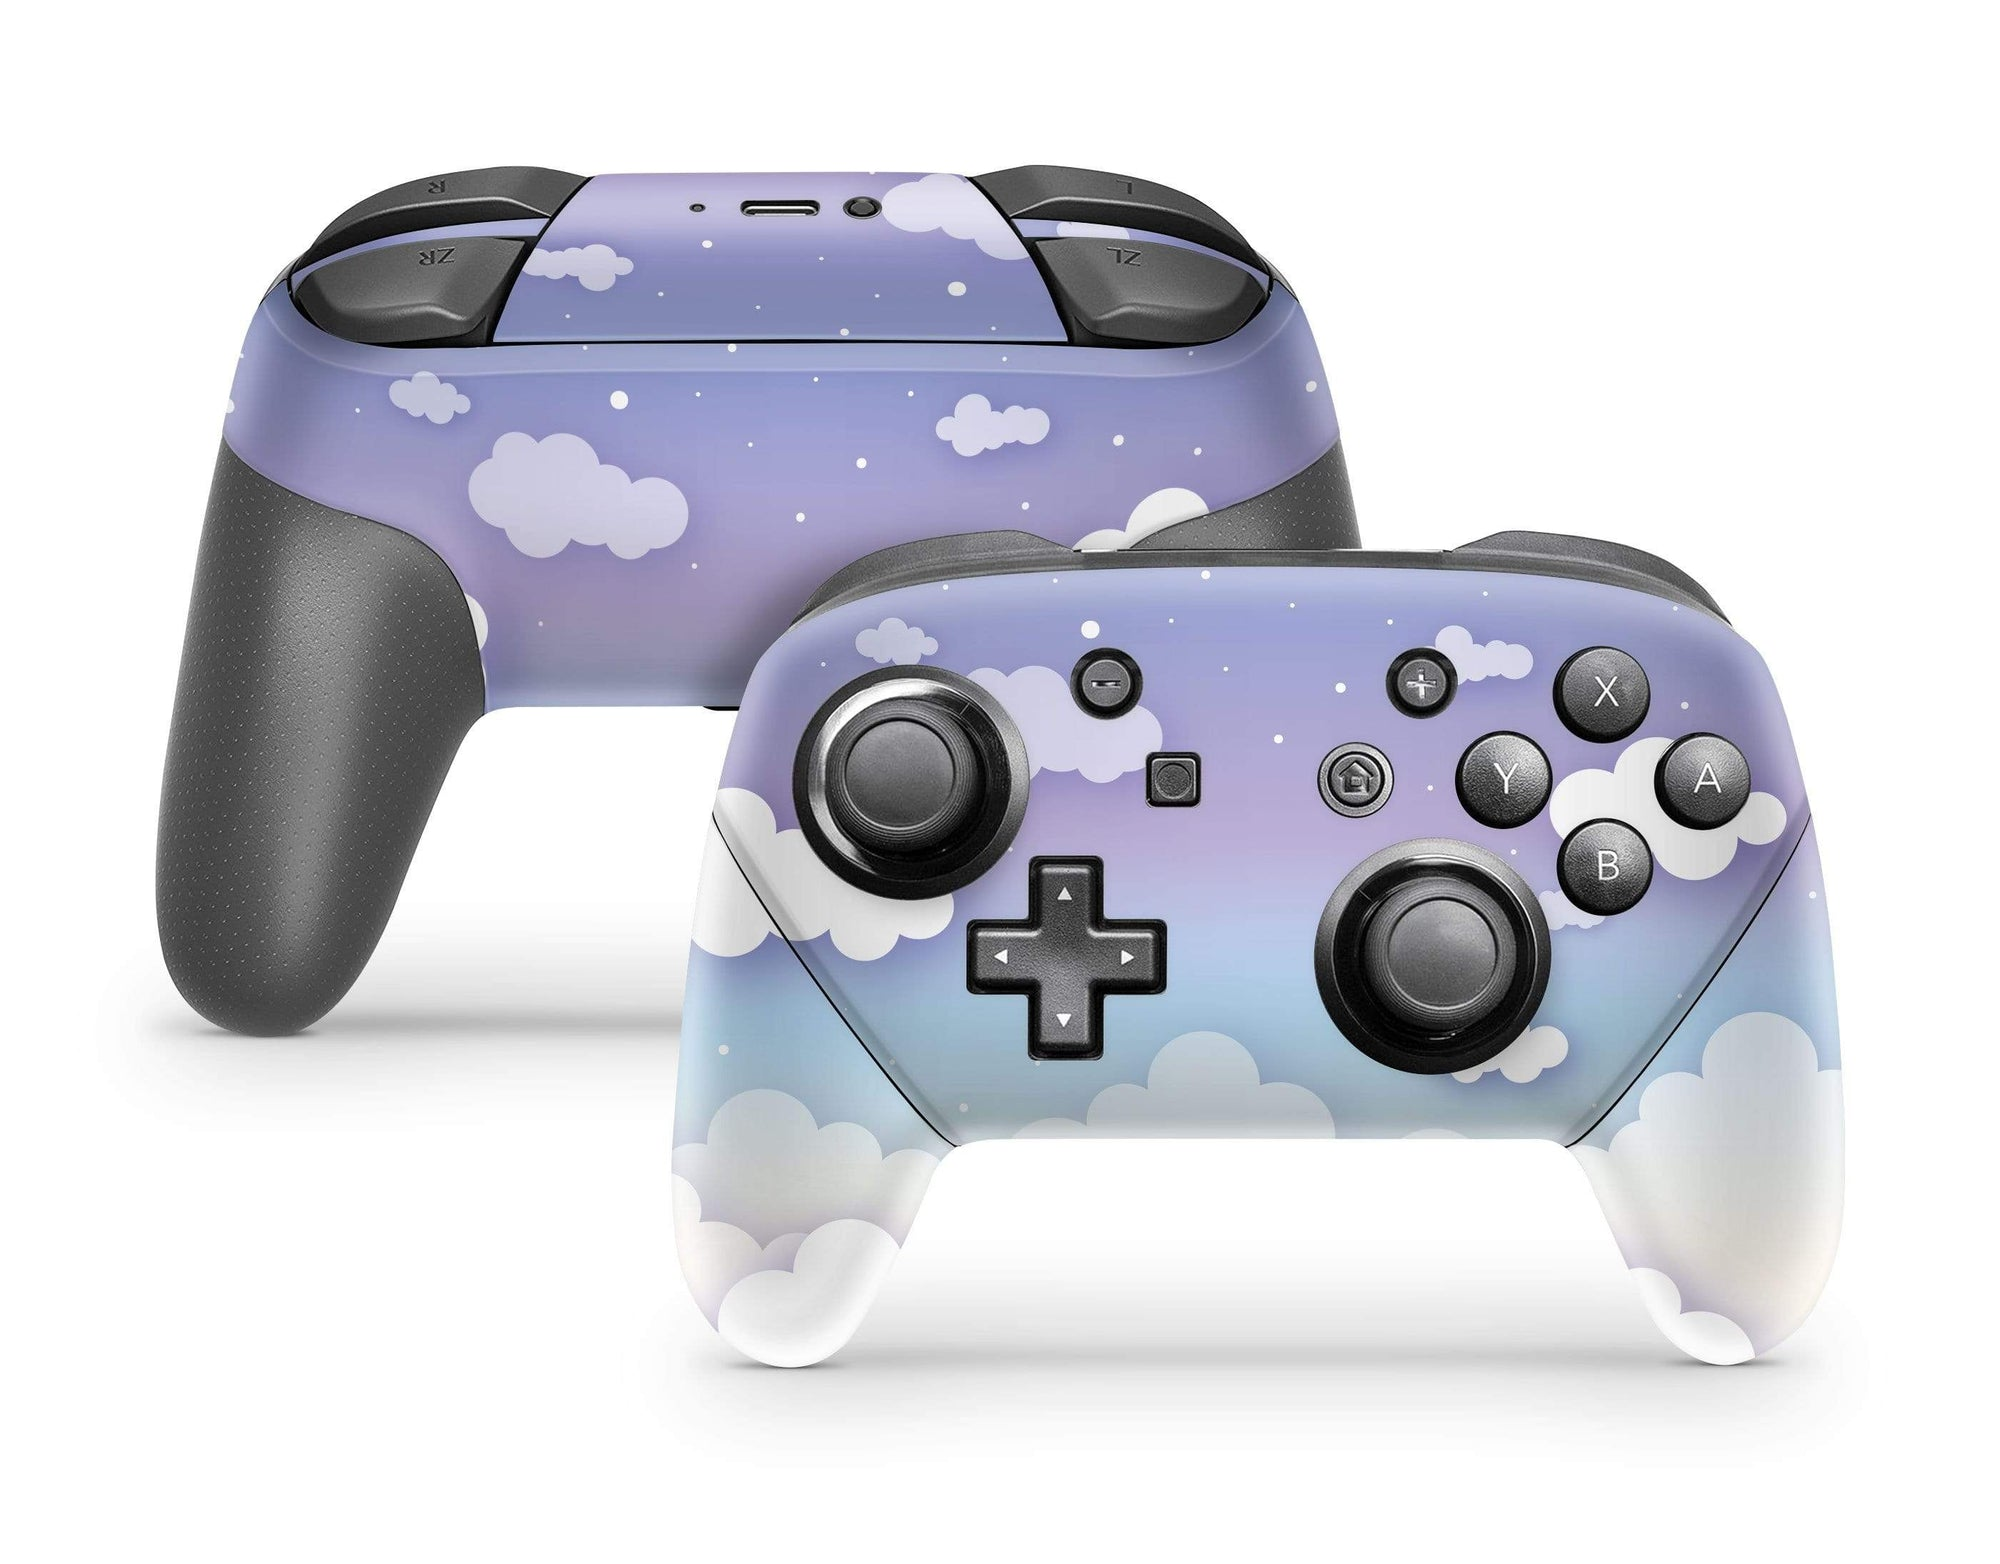 Clouds In The Sky Nintendo Switch Pro Controller Skin Stickybunny